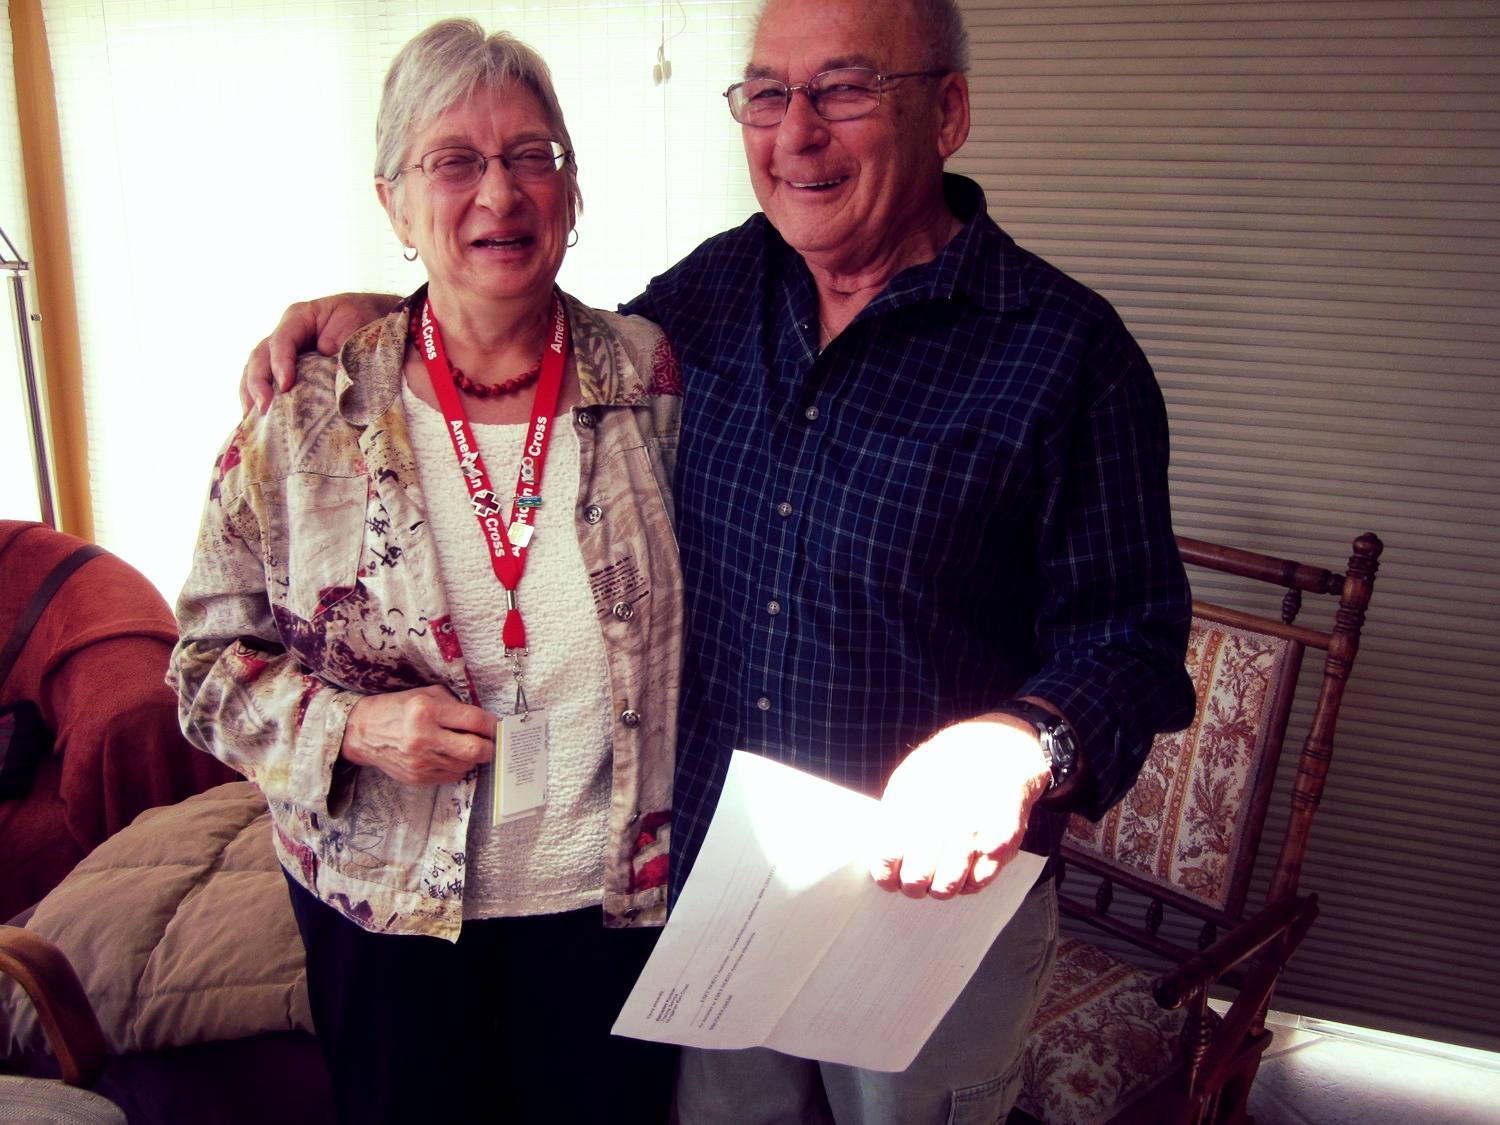 Robbe Sokolove, Restoring Family Links volunteer, and George Kantor reminisce about their first meeting.